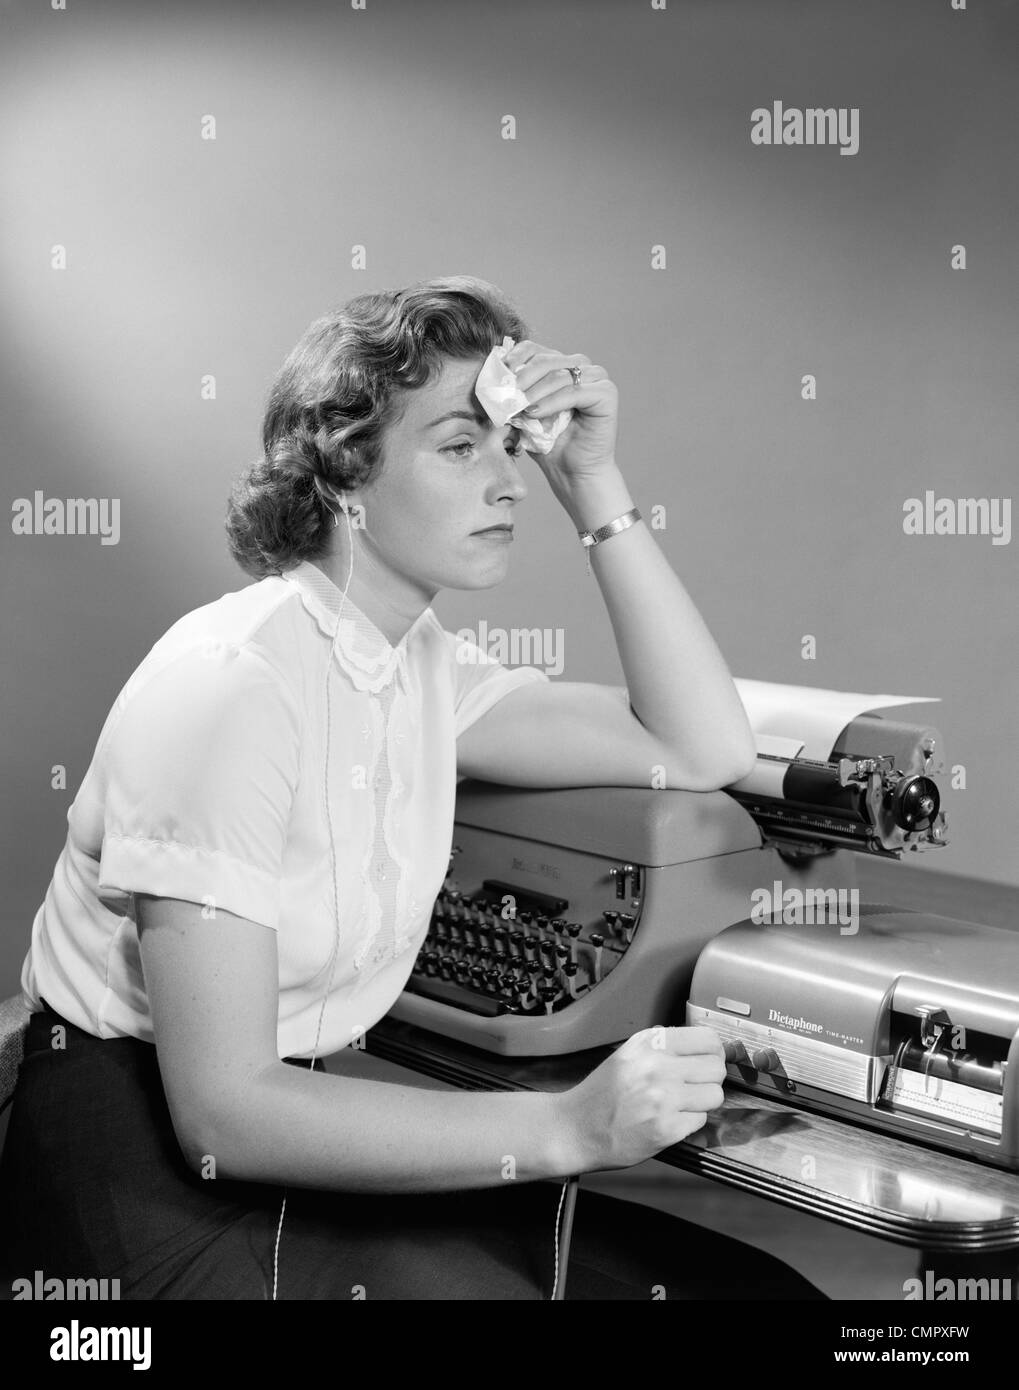 1950s AILING WOMAN SECRETARY SITTING AT DESK WITH TYPEWRITER AND DICTATION MACHINE HOLDING HANDKERCHIEF TO FOREHEAD - Stock Image